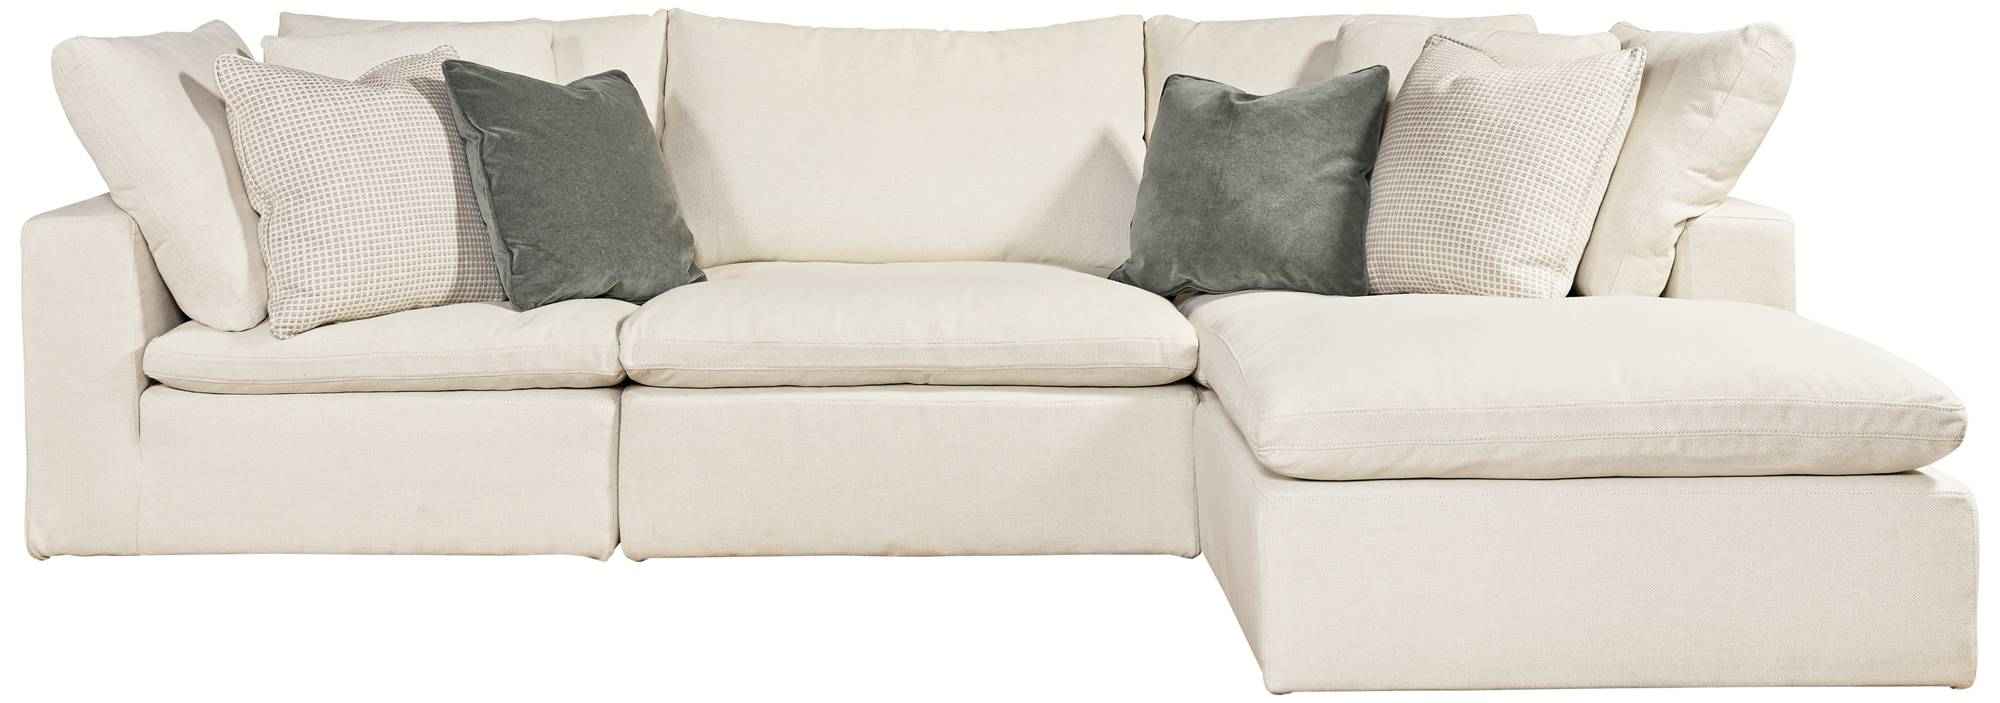 Skye Classic Natural 5 Piece Modular Sectional 1y166